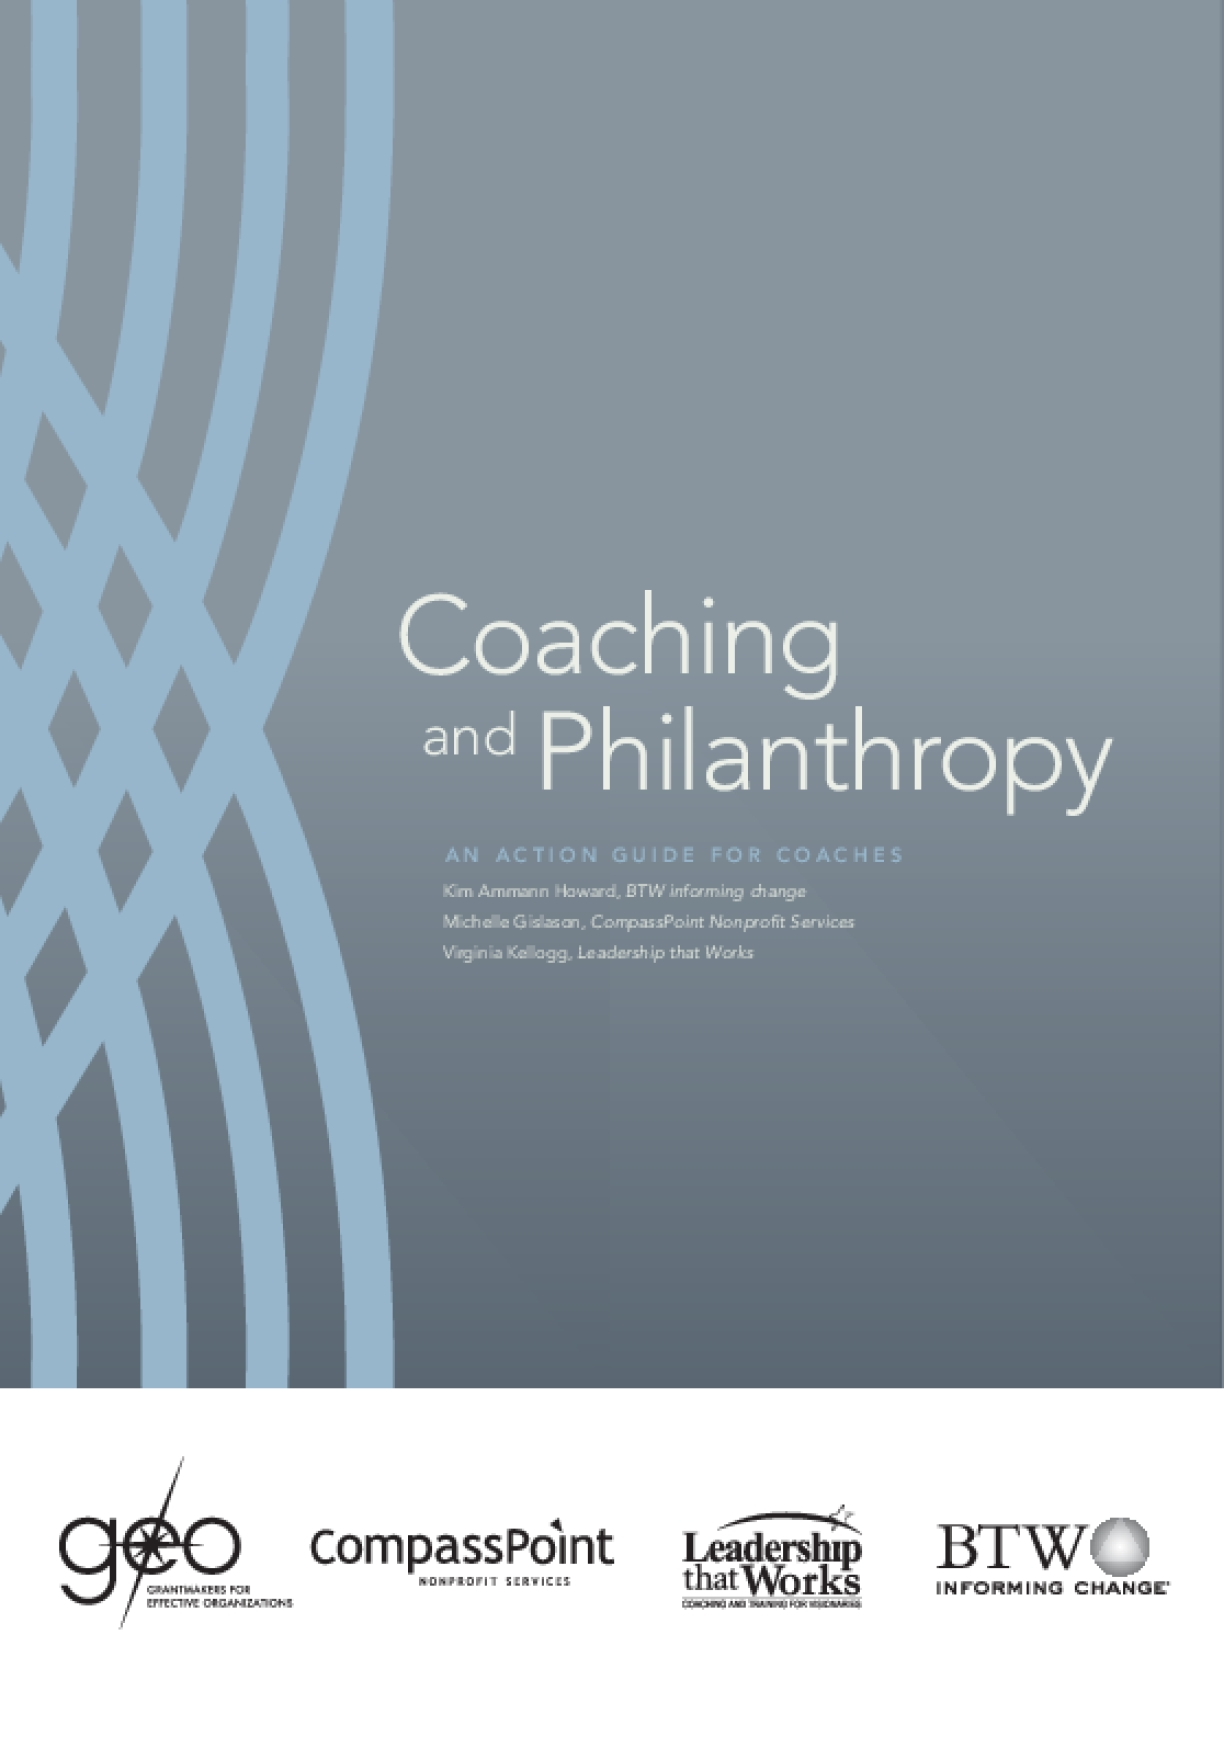 Coaching and Philanthropy: An Action Guide for Coaches